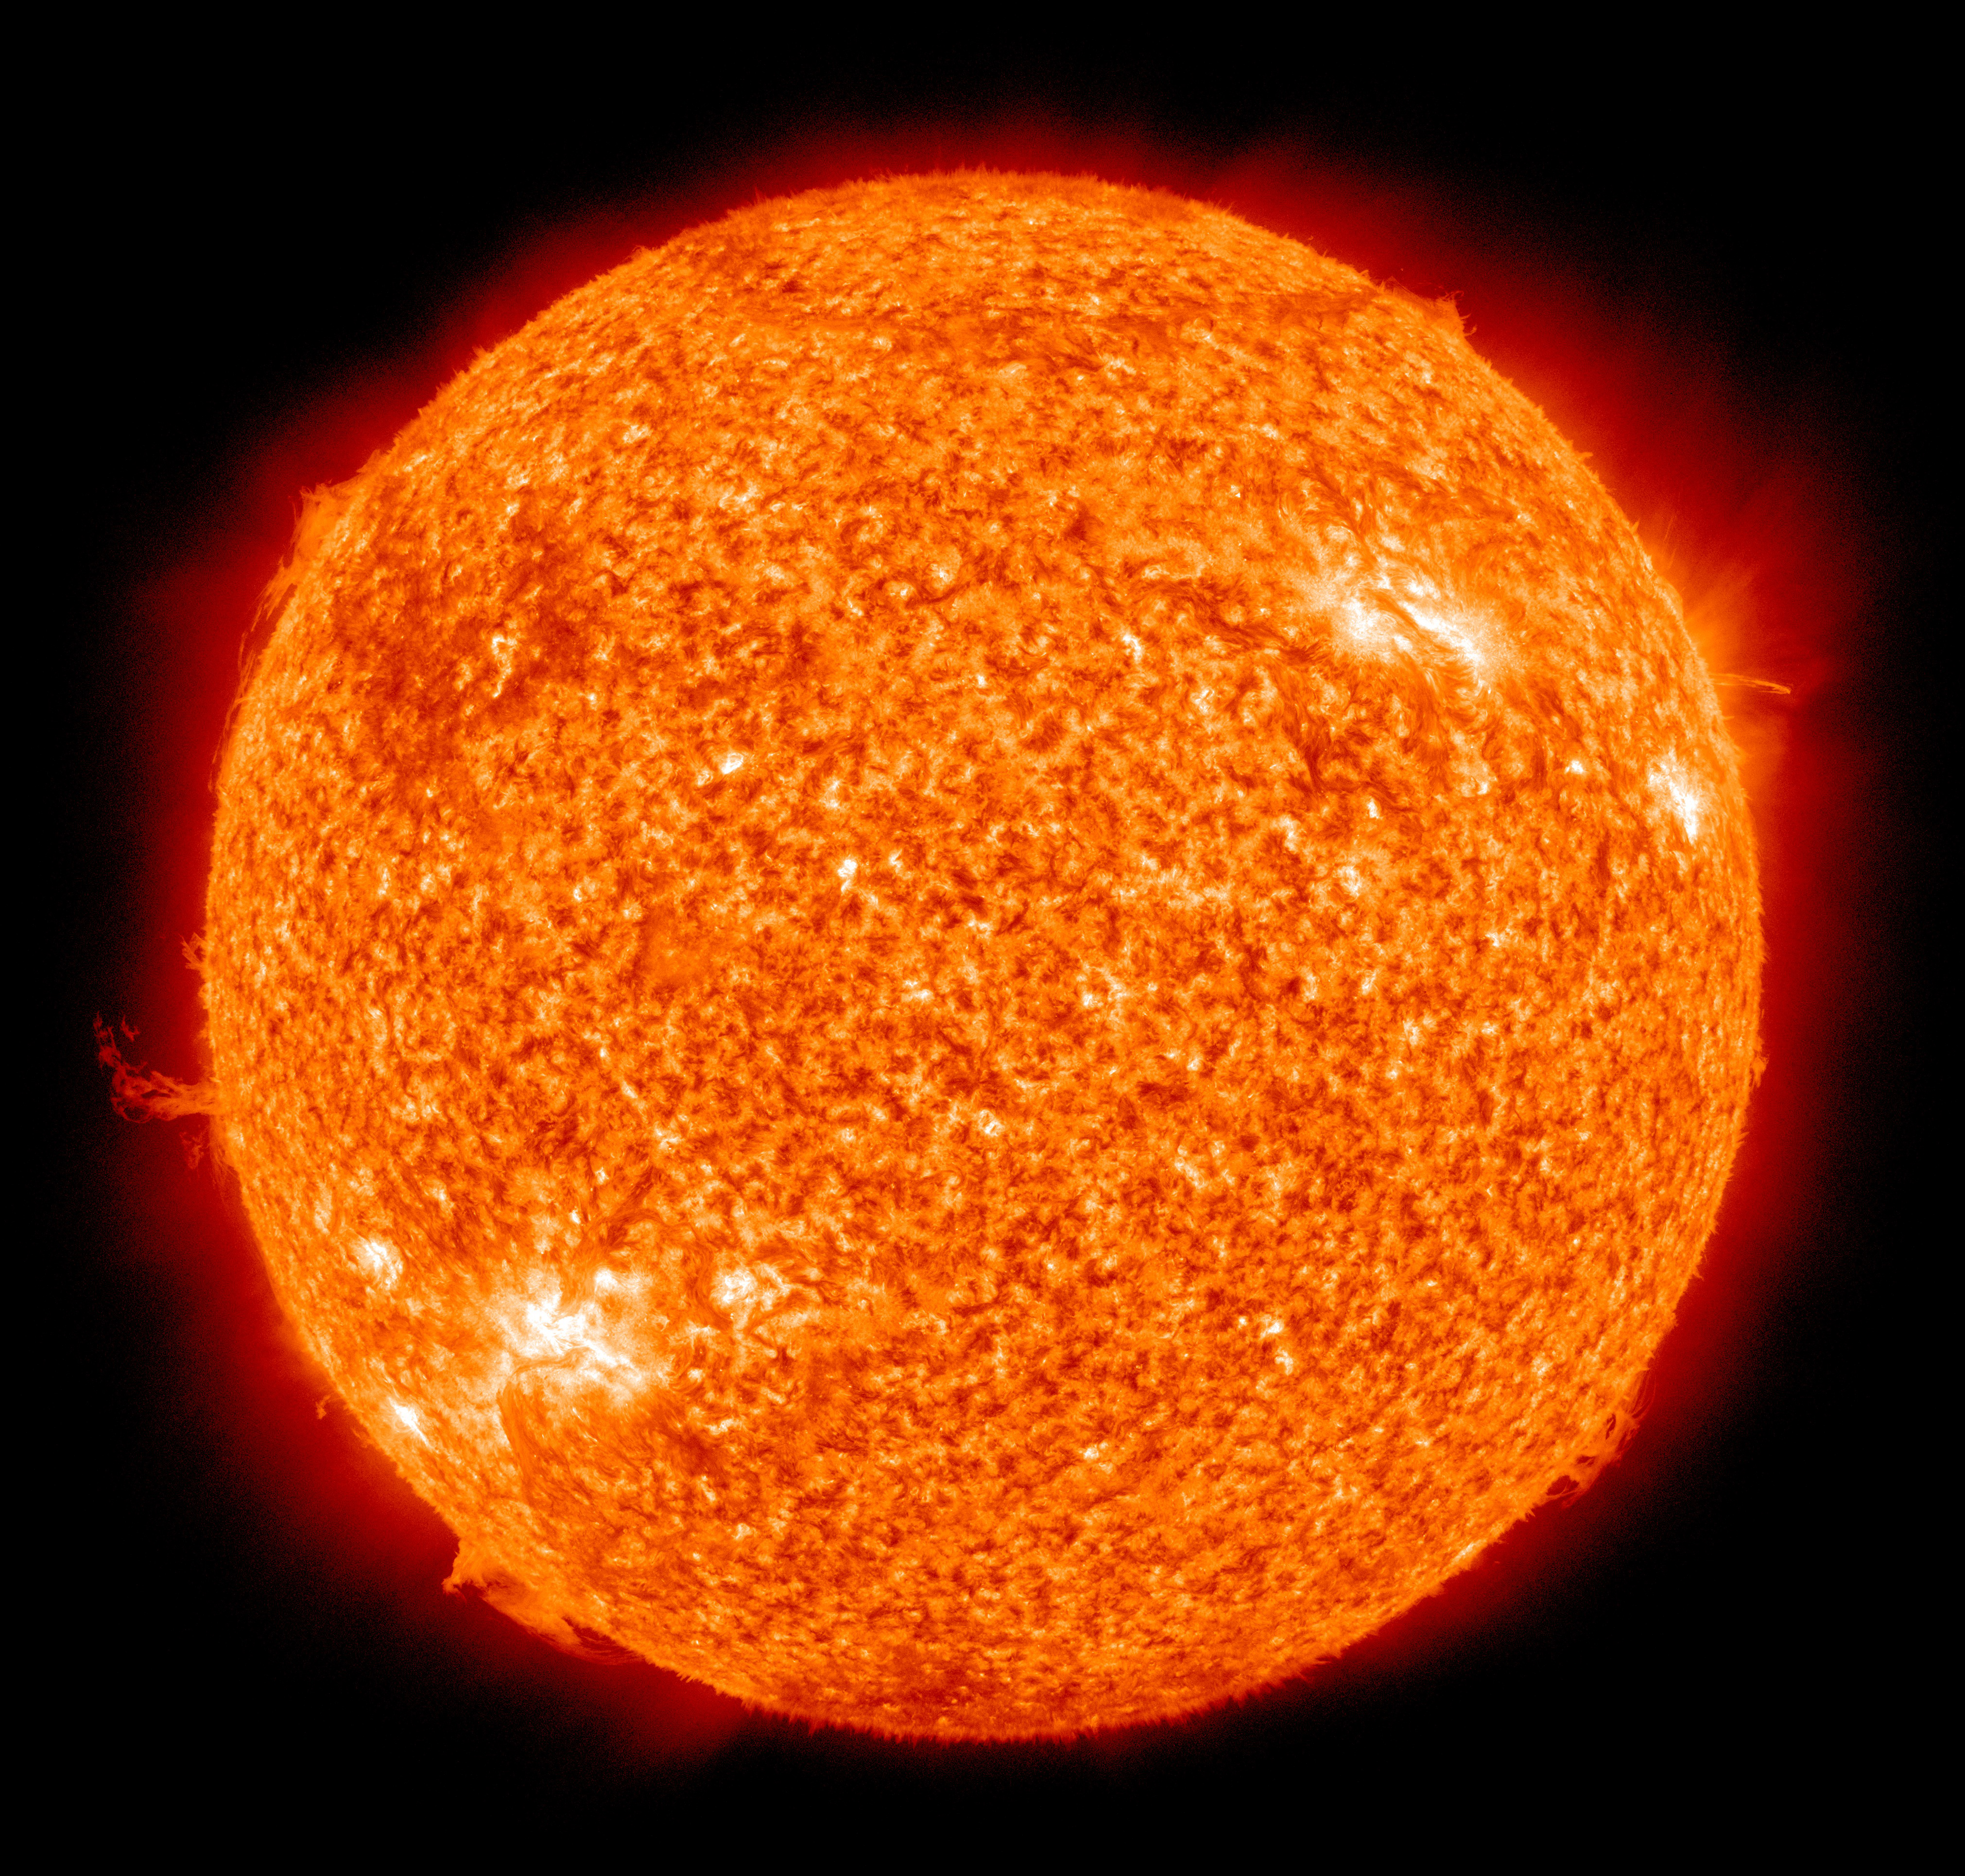 The Sun photographed by the Atmospheric Imaging Assembly of NASA's Solar Dynamics Observatory.